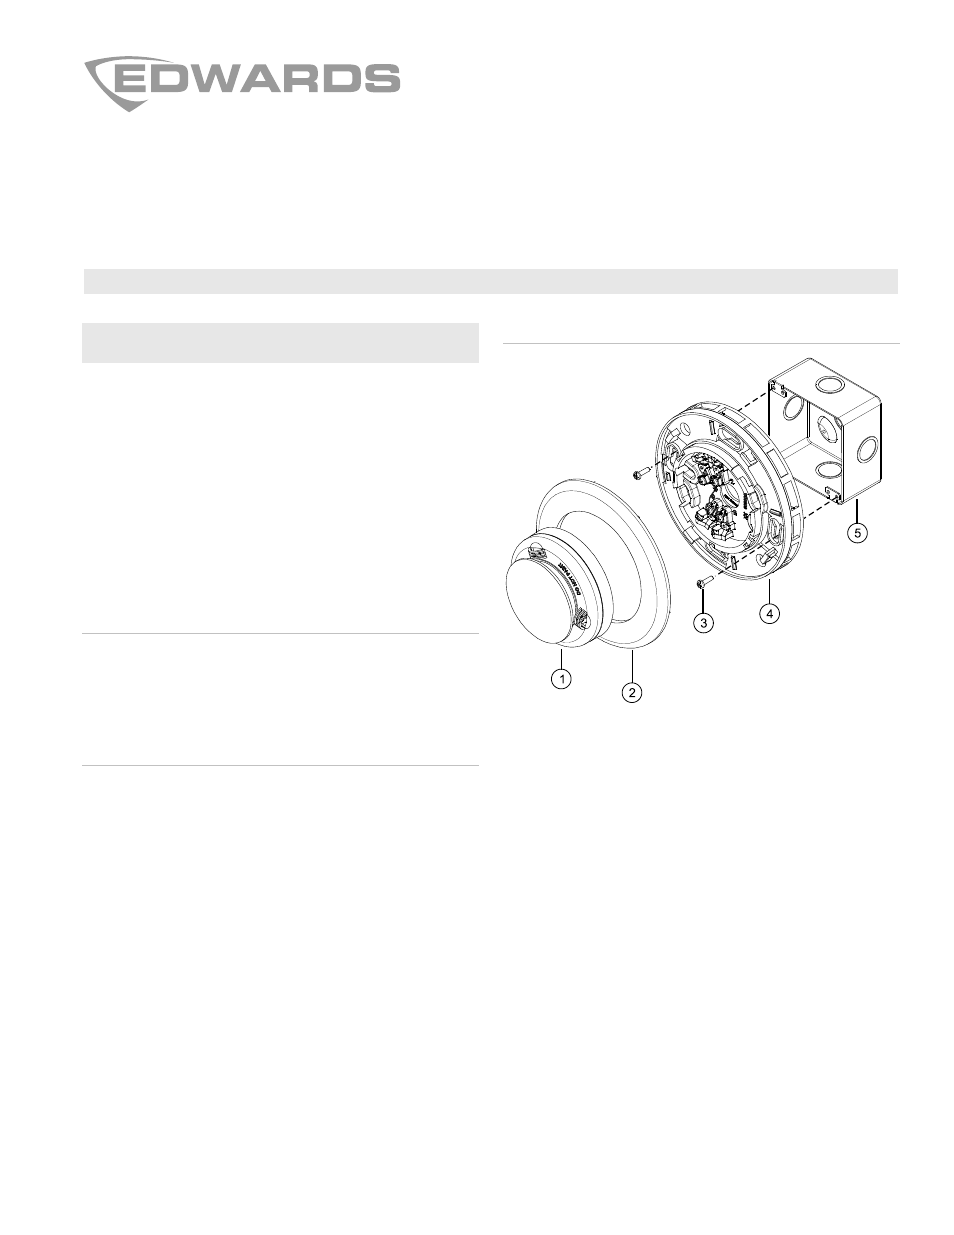 Edwards Signaling Ib4u Analog Isolator Detector Base Manuel D Electric Field Circuit Dutilisation Pages 4